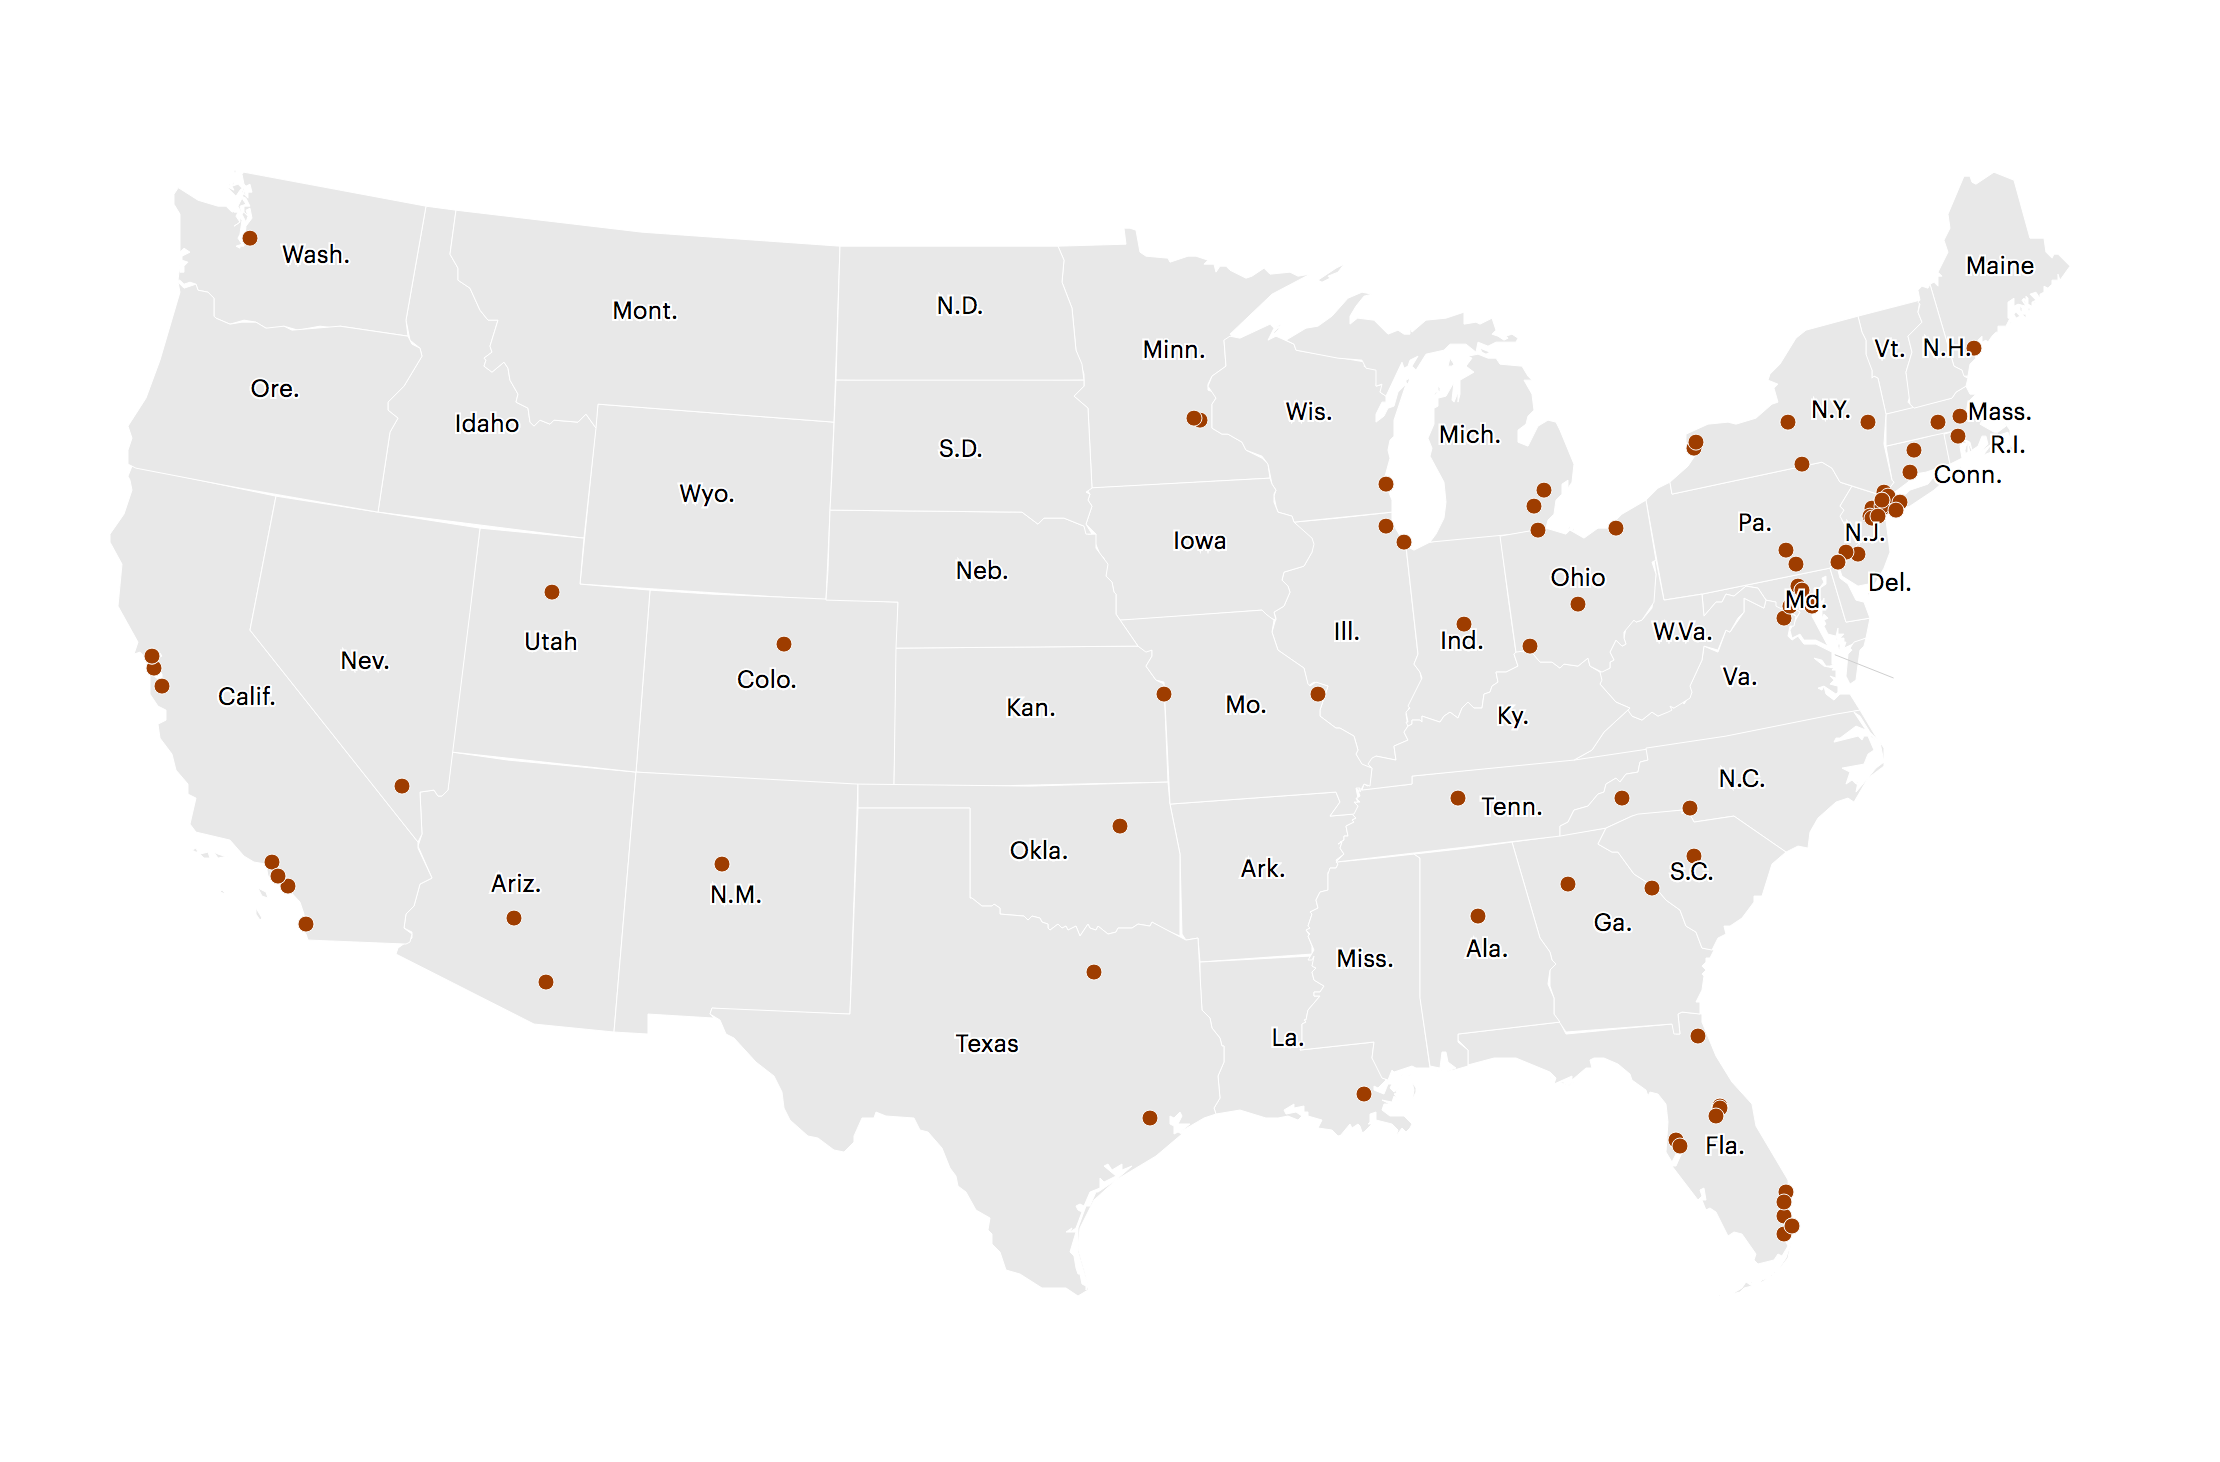 Map Bomb Threats to Jewish Community Centers and Organizations